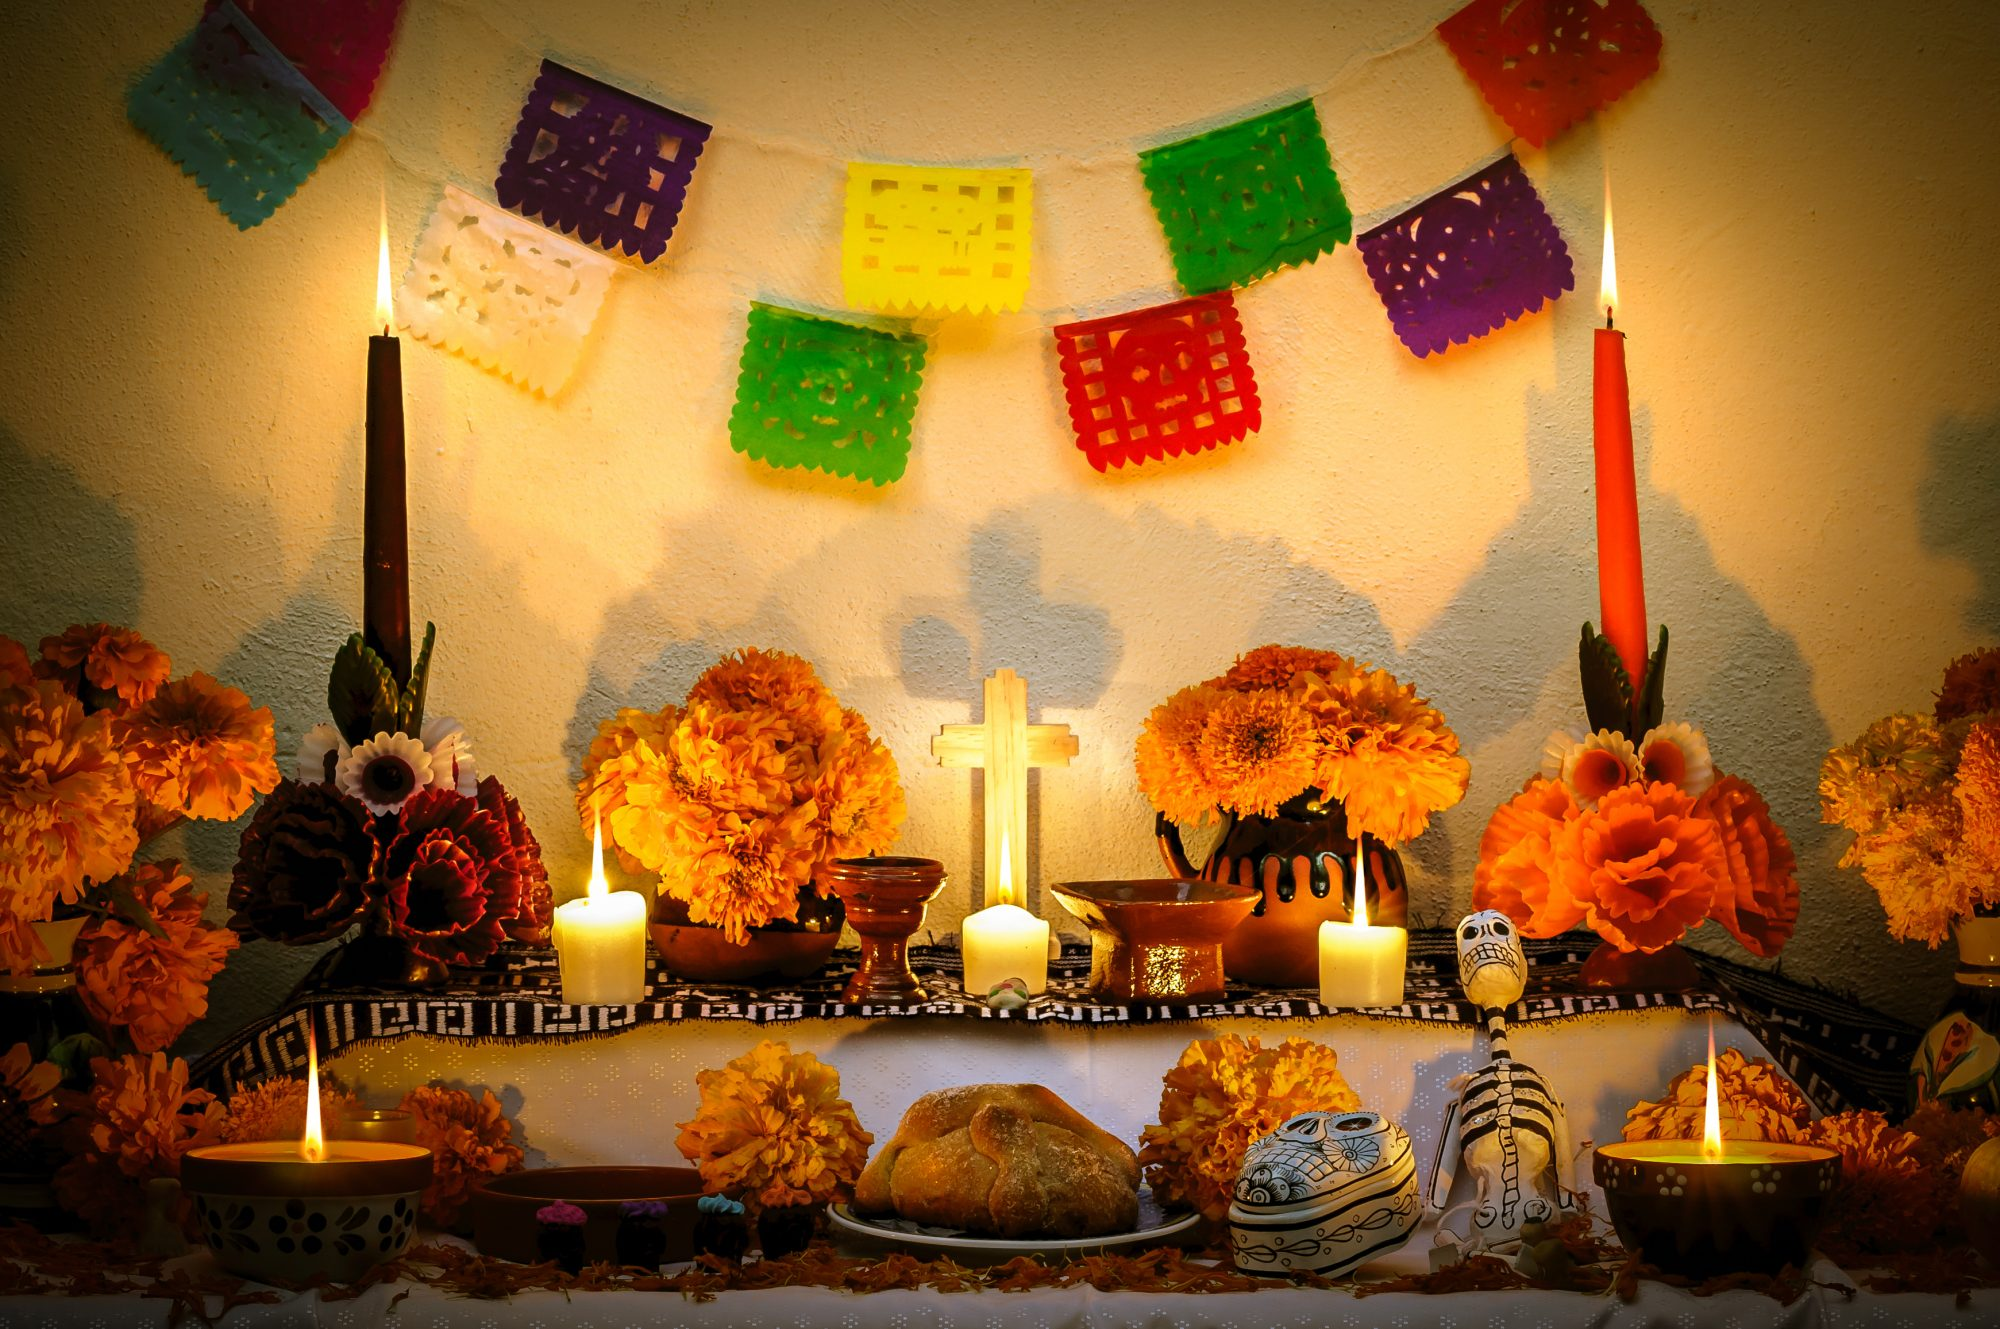 The Dia de los Muertos Tradition That Almost Wasn't